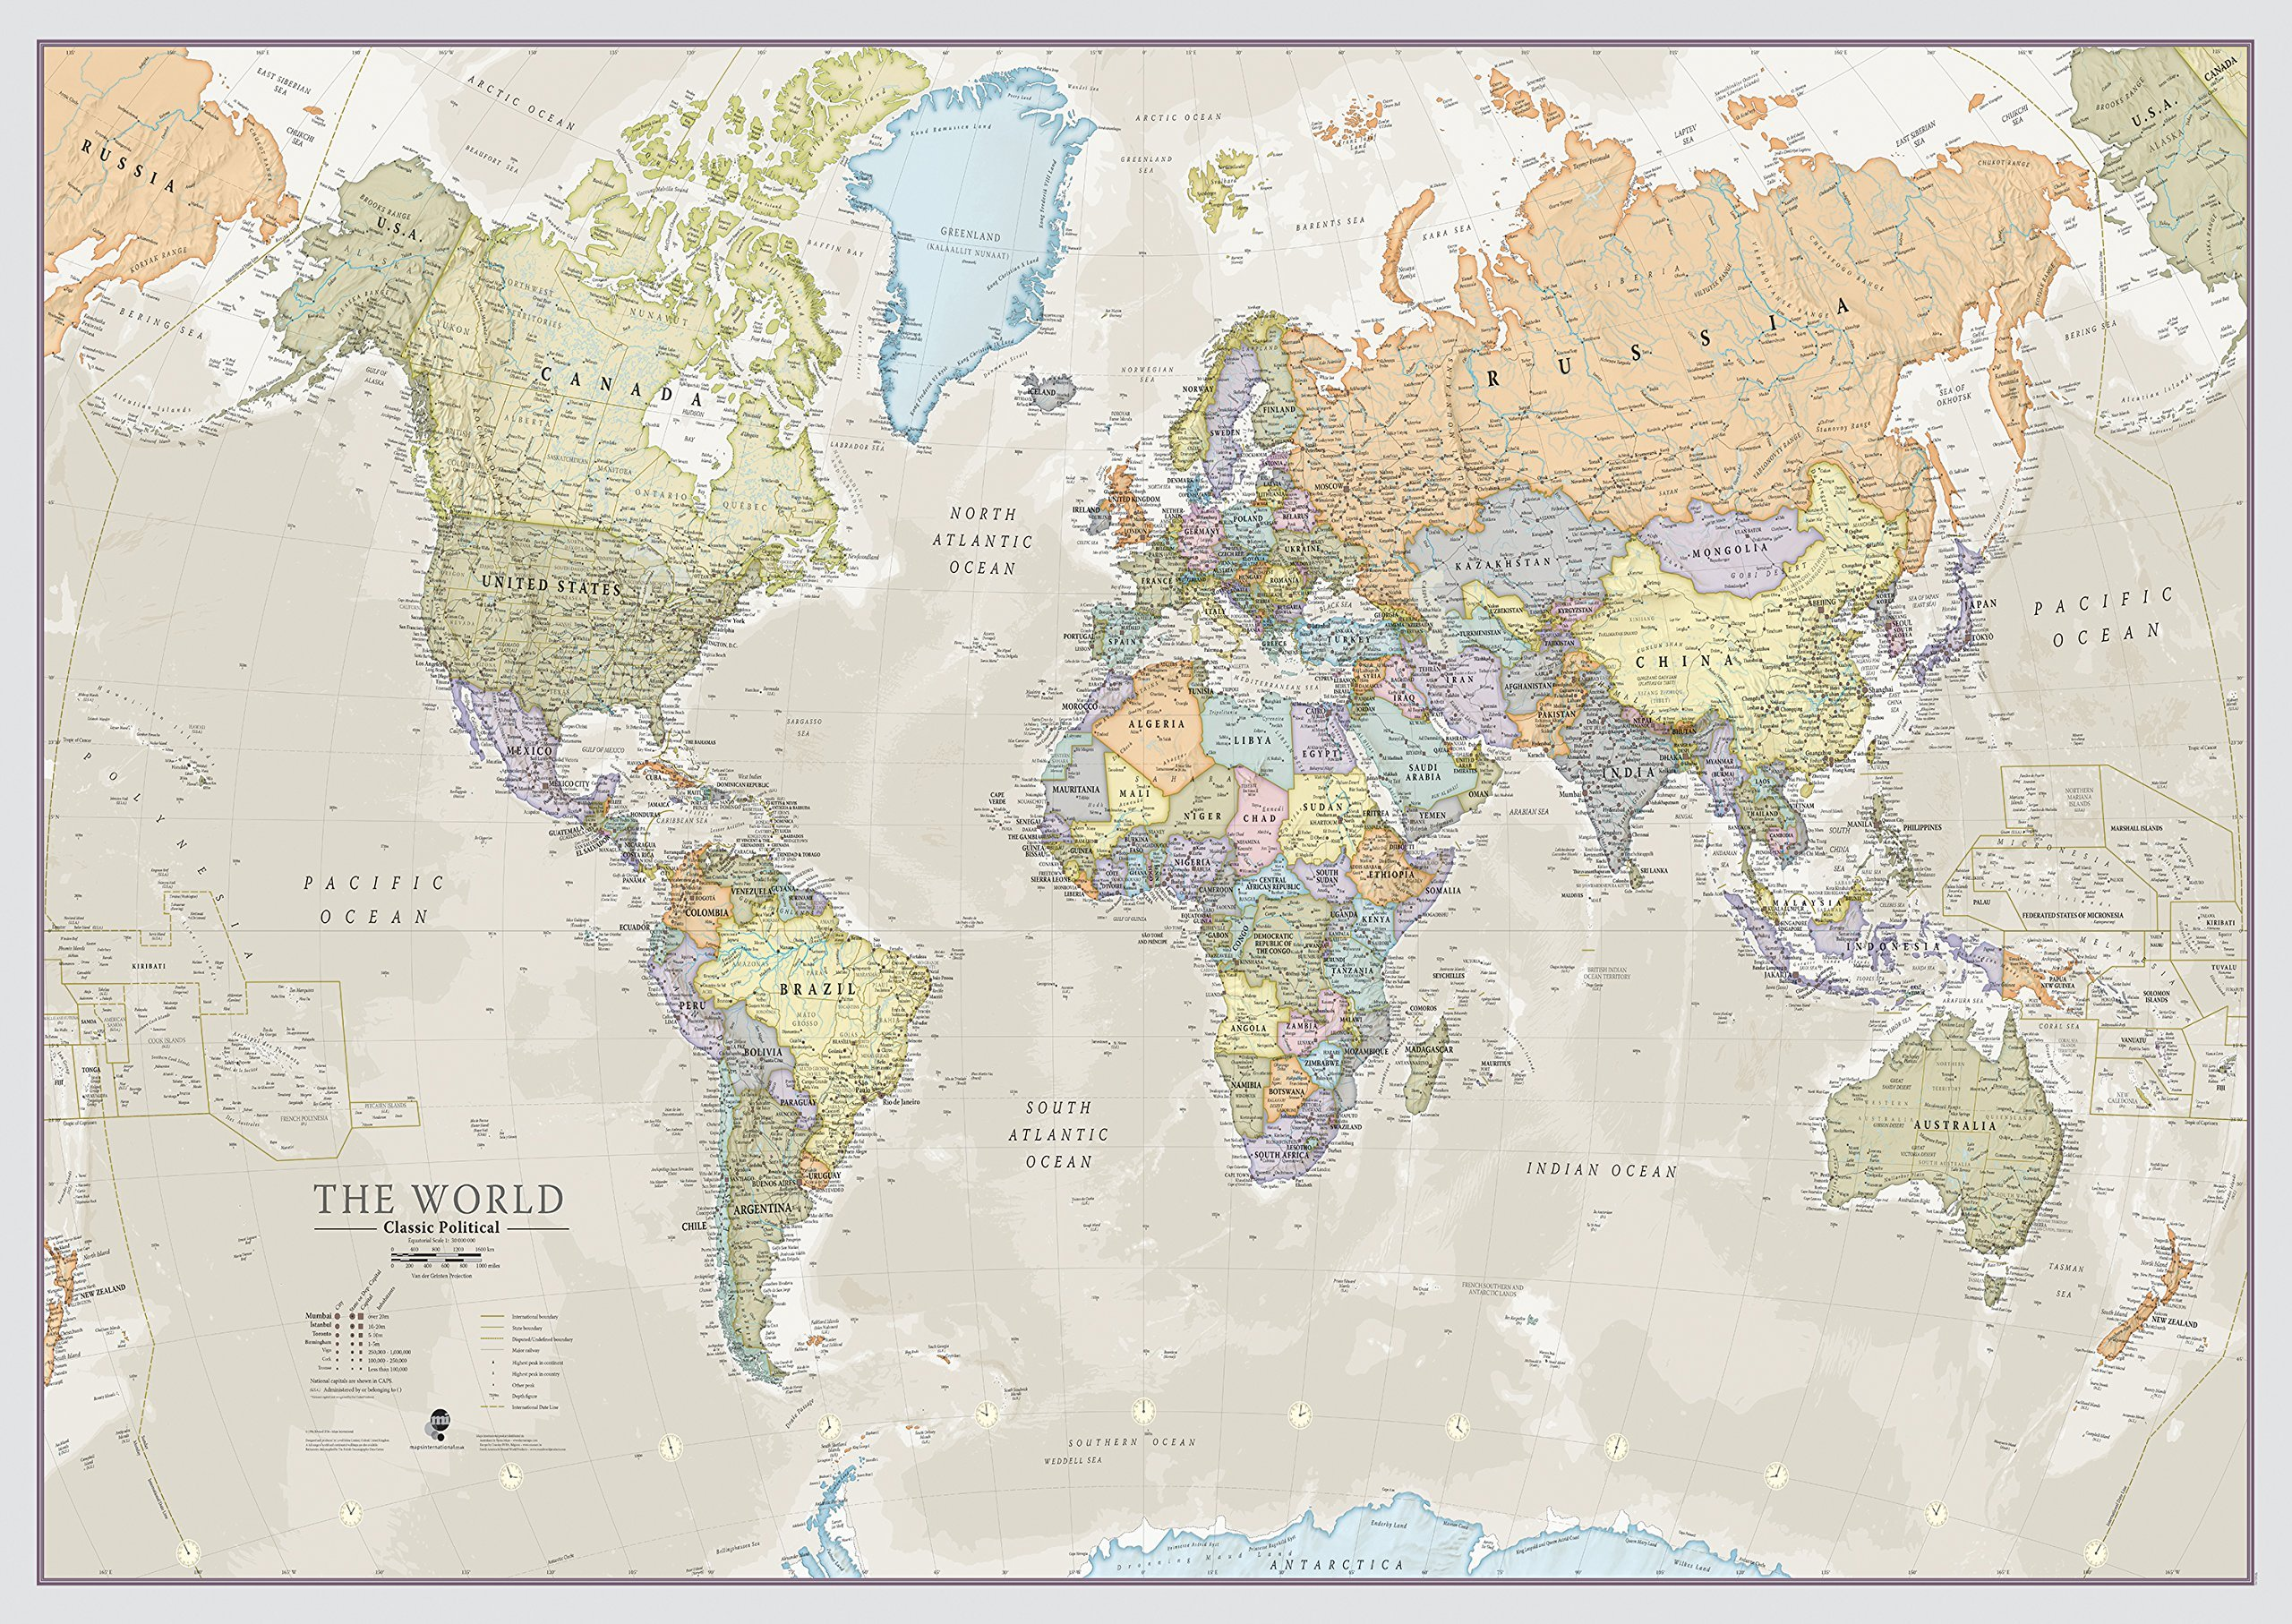 Maps International Classic World Wall Map - Map of The World Poster - Front Lamination – 47 x 33